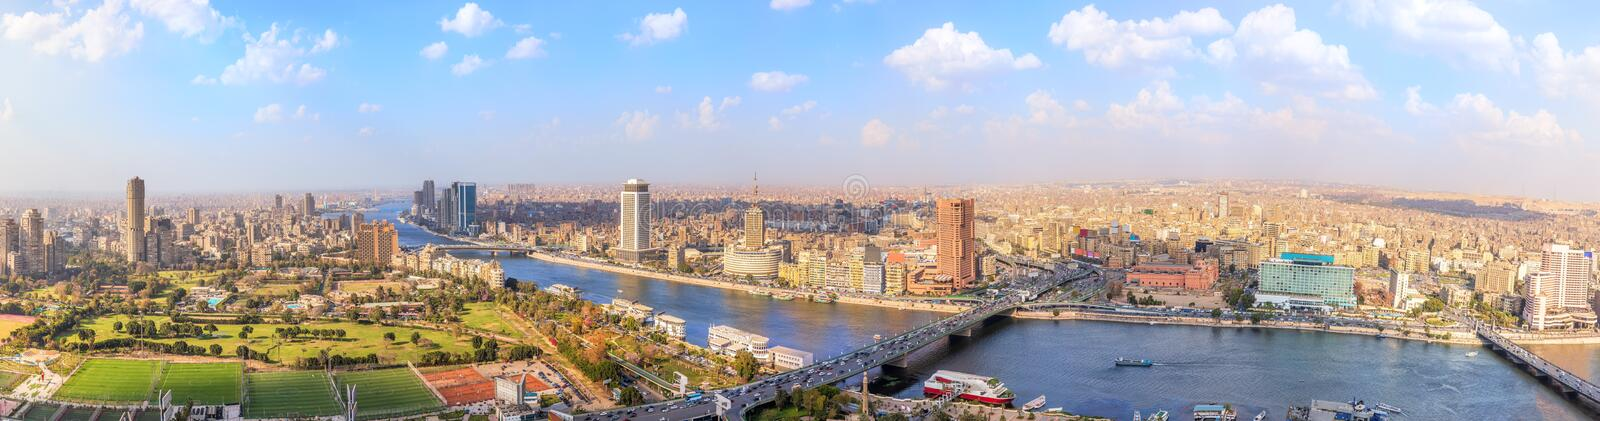 View on the Nile in Cairo, panorama from above, Egypt royalty free stock images